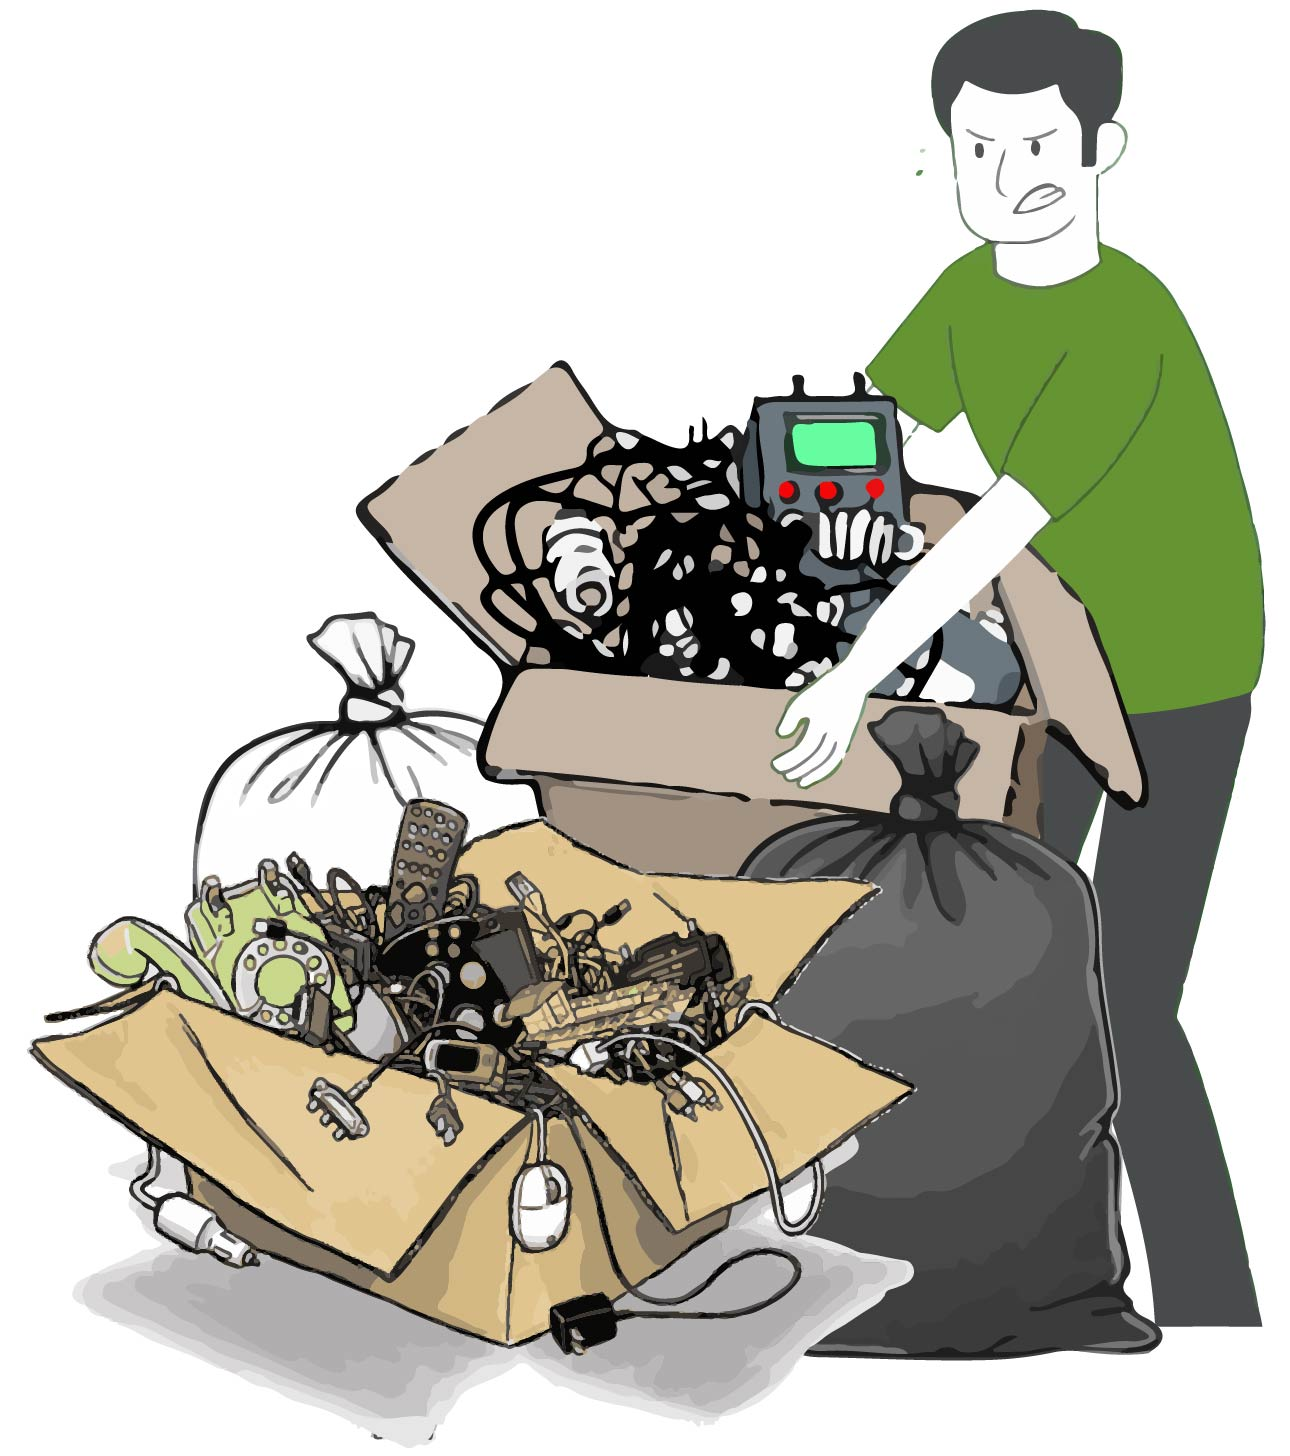 Affordable Junk Removal Services in Chesterfield, MO